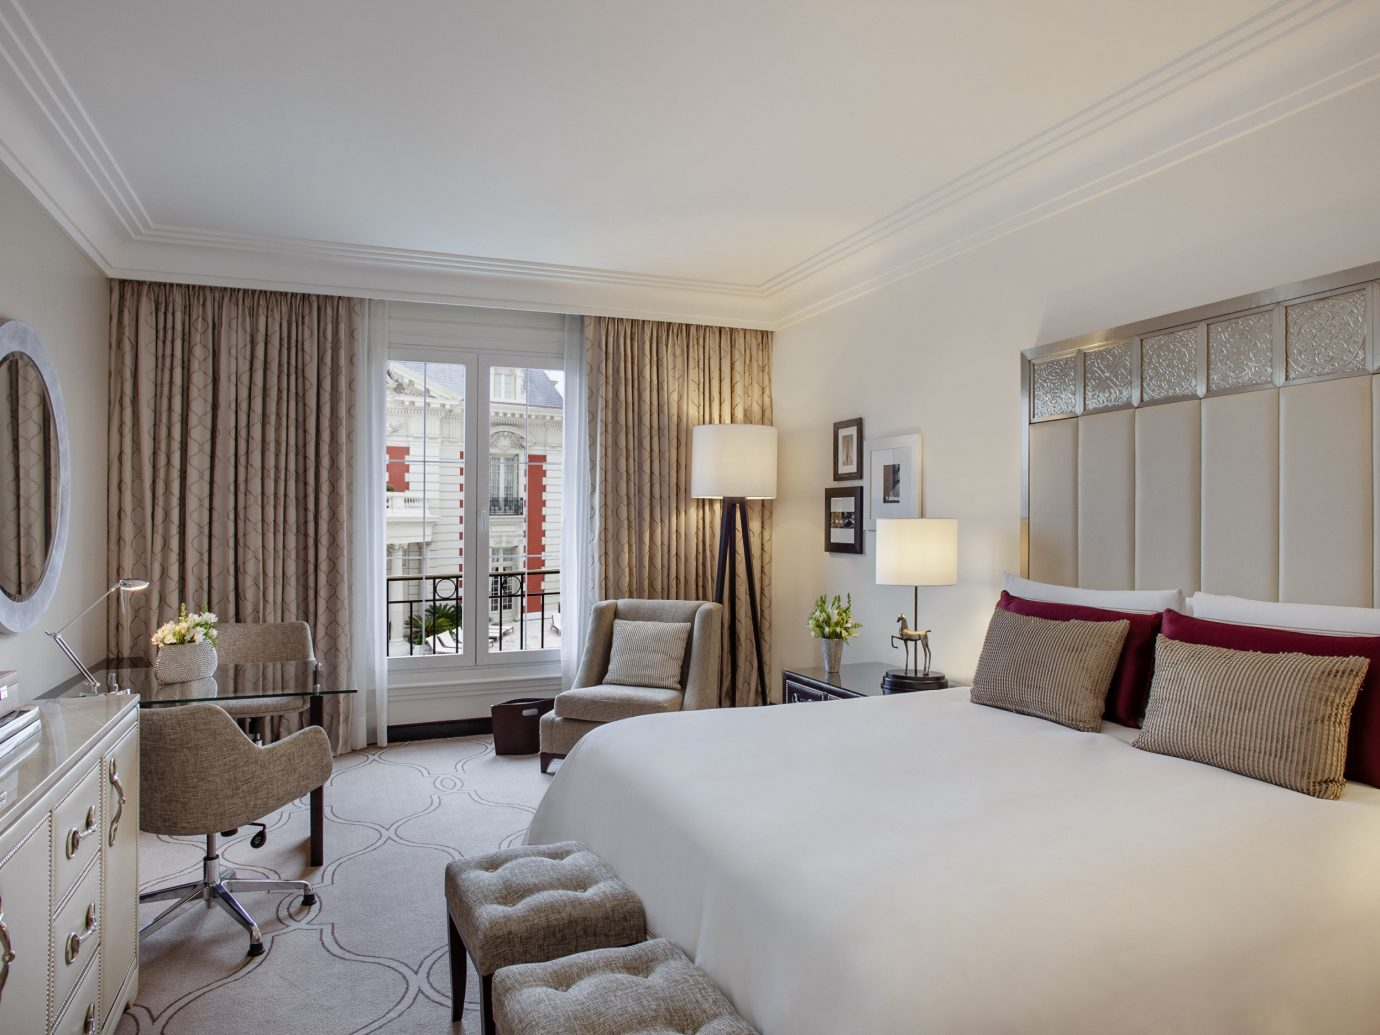 Boutique Hotels Luxury Travel indoor wall room sofa bed property interior design Suite ceiling Bedroom living room scene real estate window treatment window home hotel estate interior designer window covering apartment curtain furniture decorated